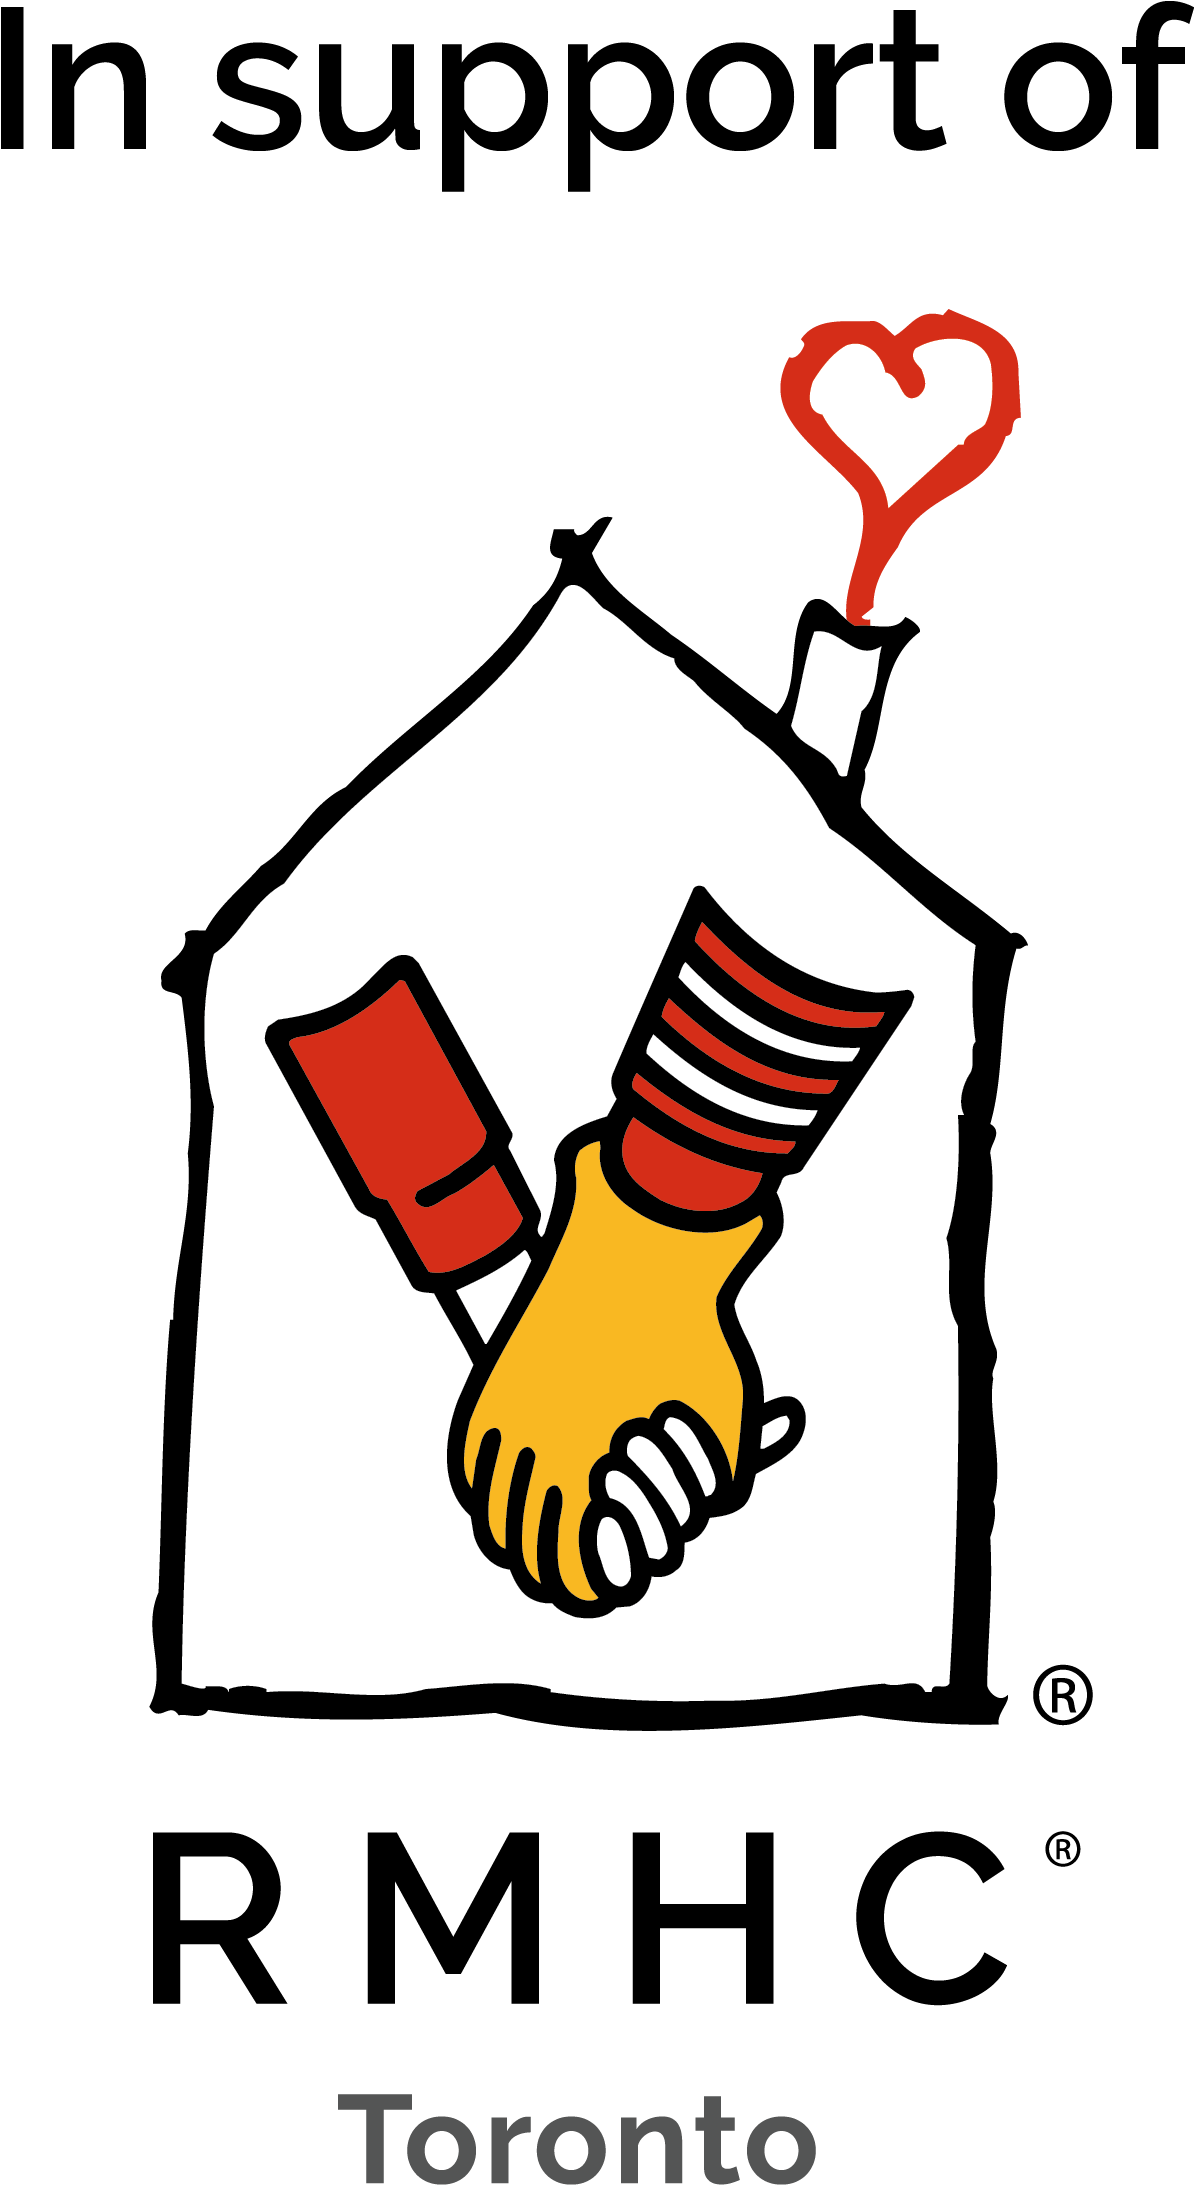 Whiterose Janitorial Services Ltd - Ronald Mcdonald House Charities Canada Clipart (1210x2207), Png Download